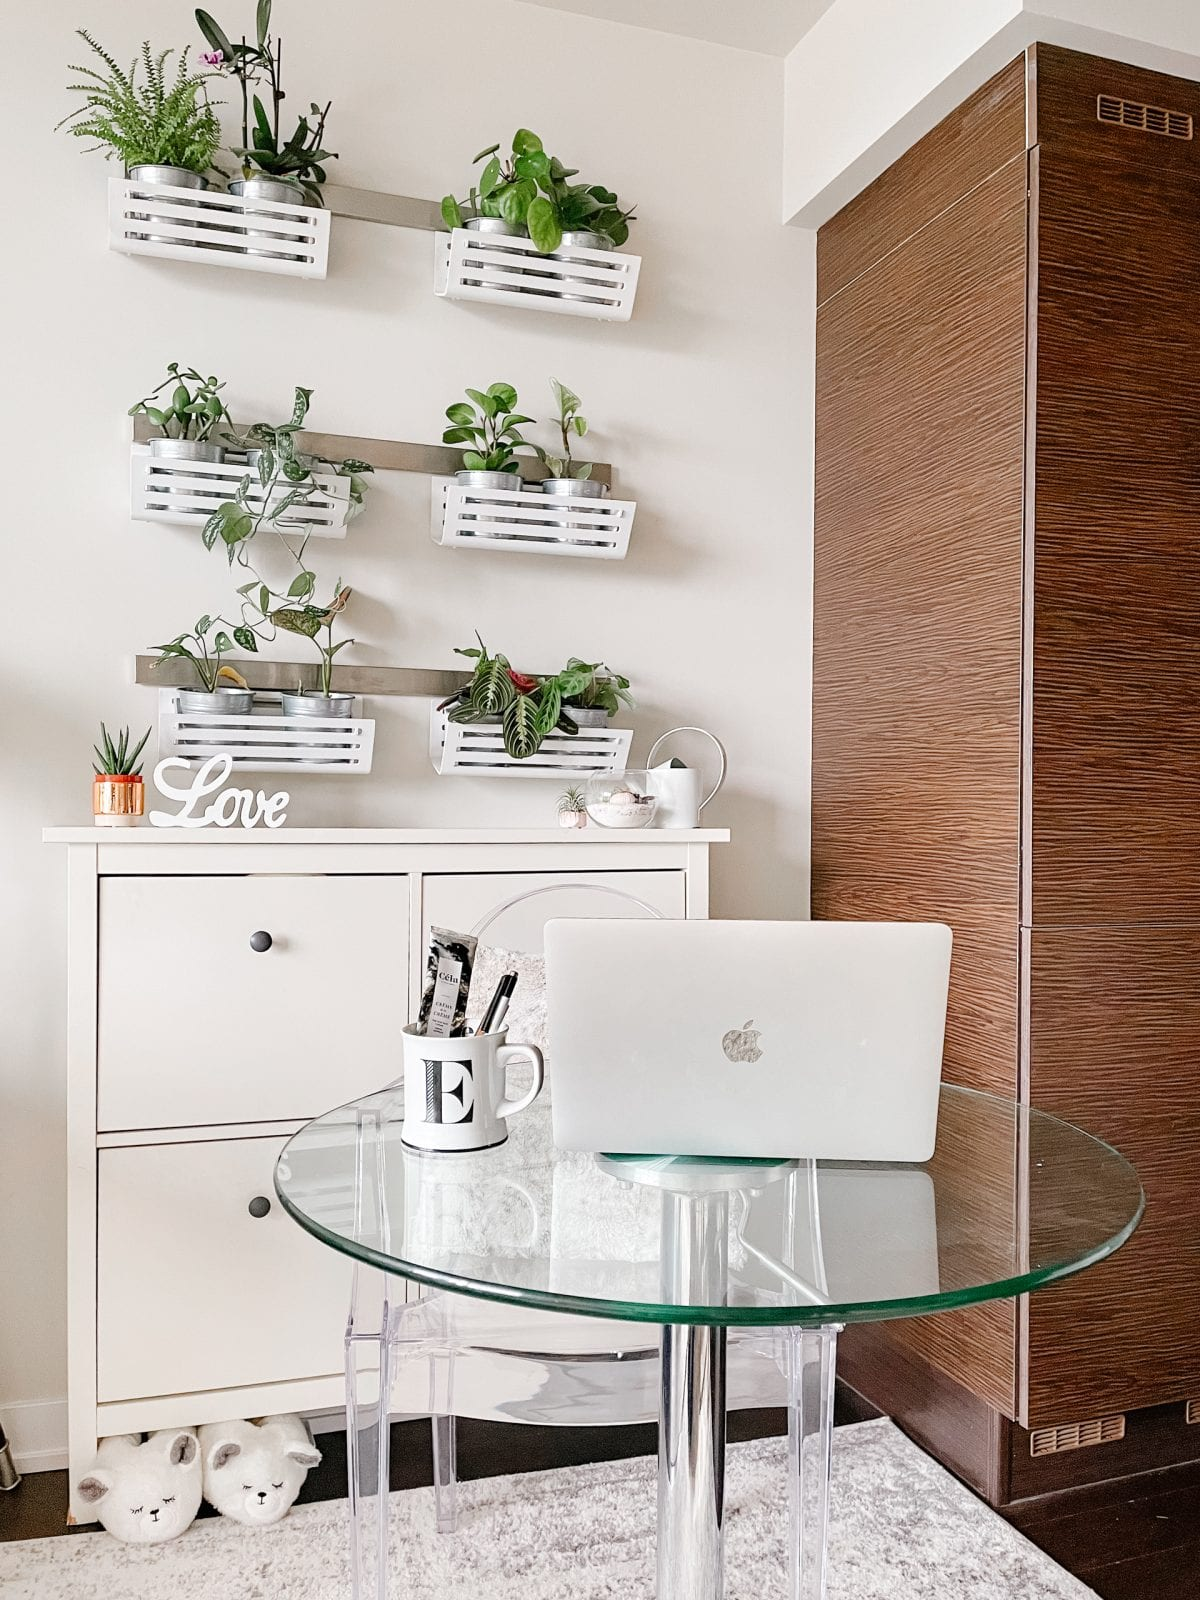 Apartment tour - working area with desk and plant wall